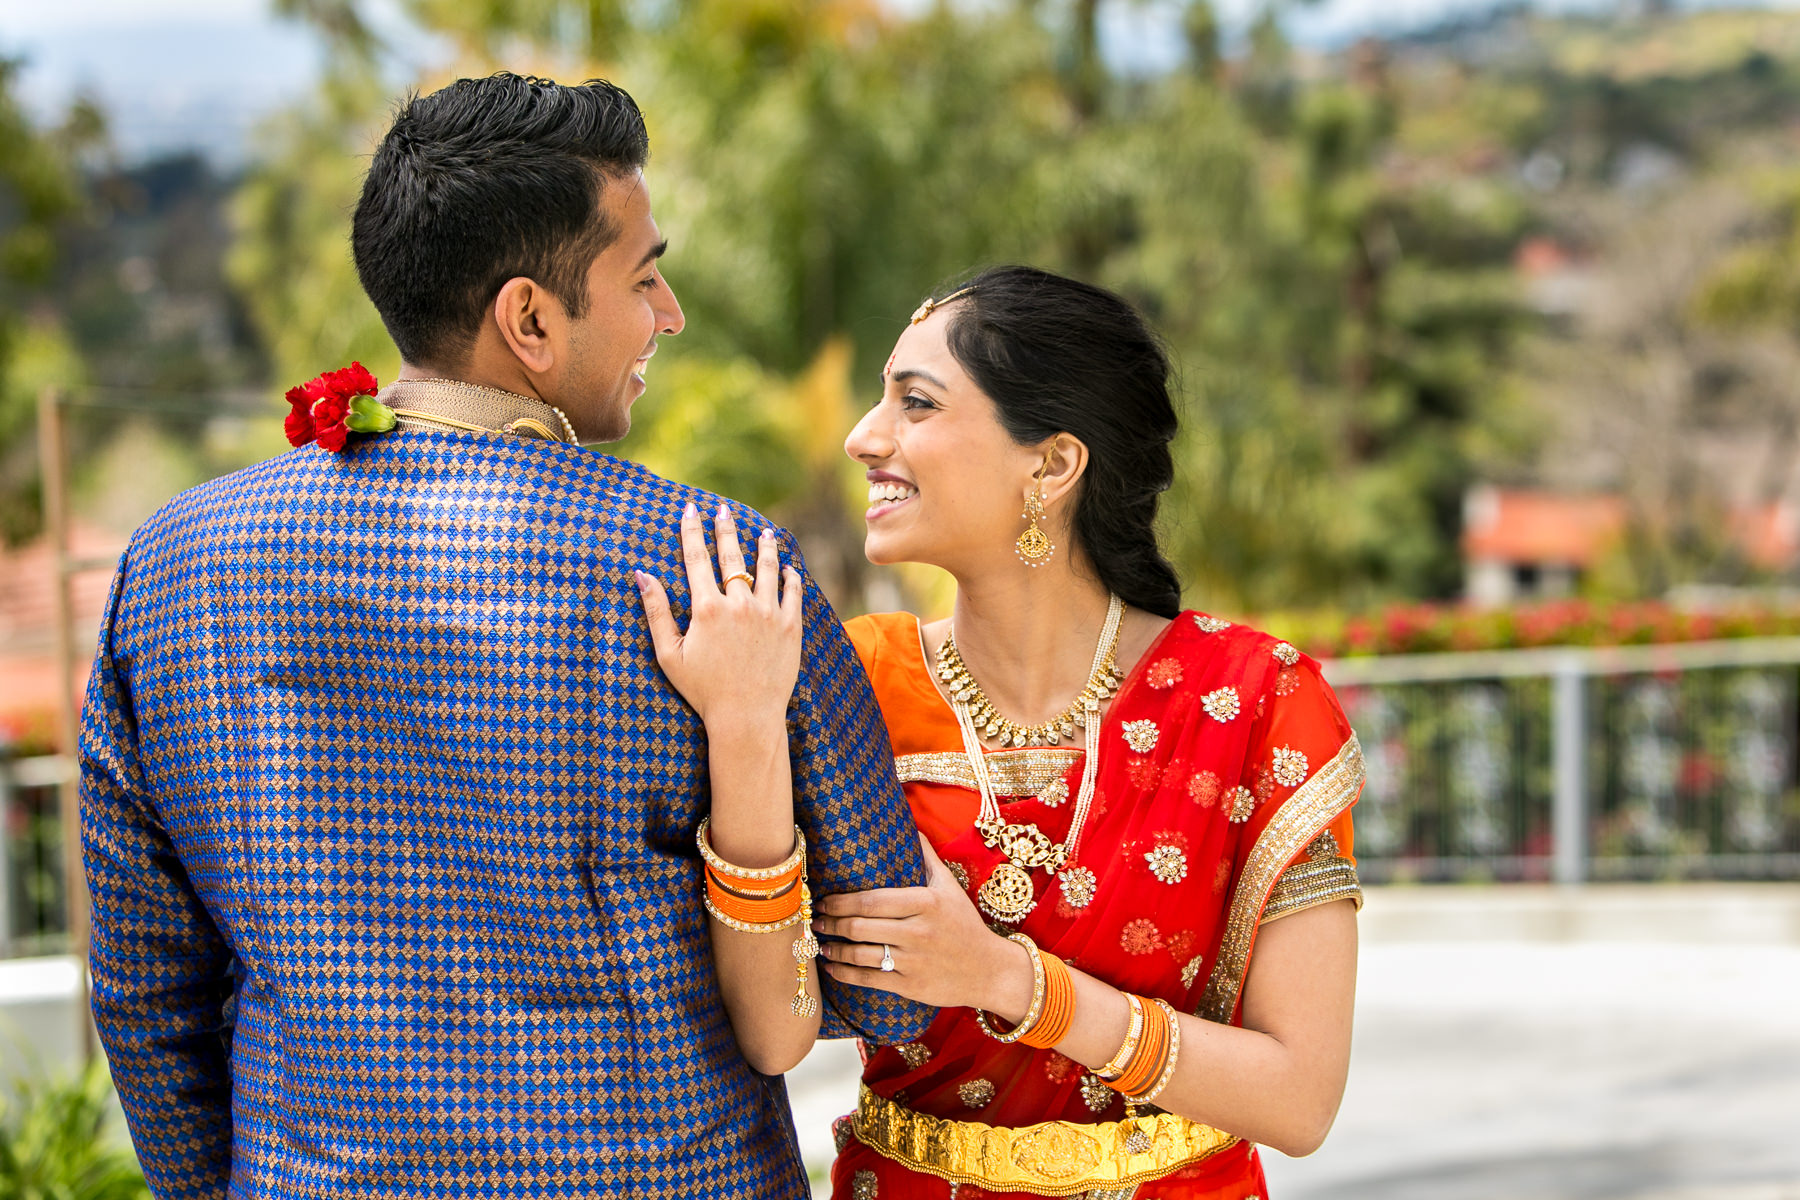 beautiful pose of south asian wedding couple